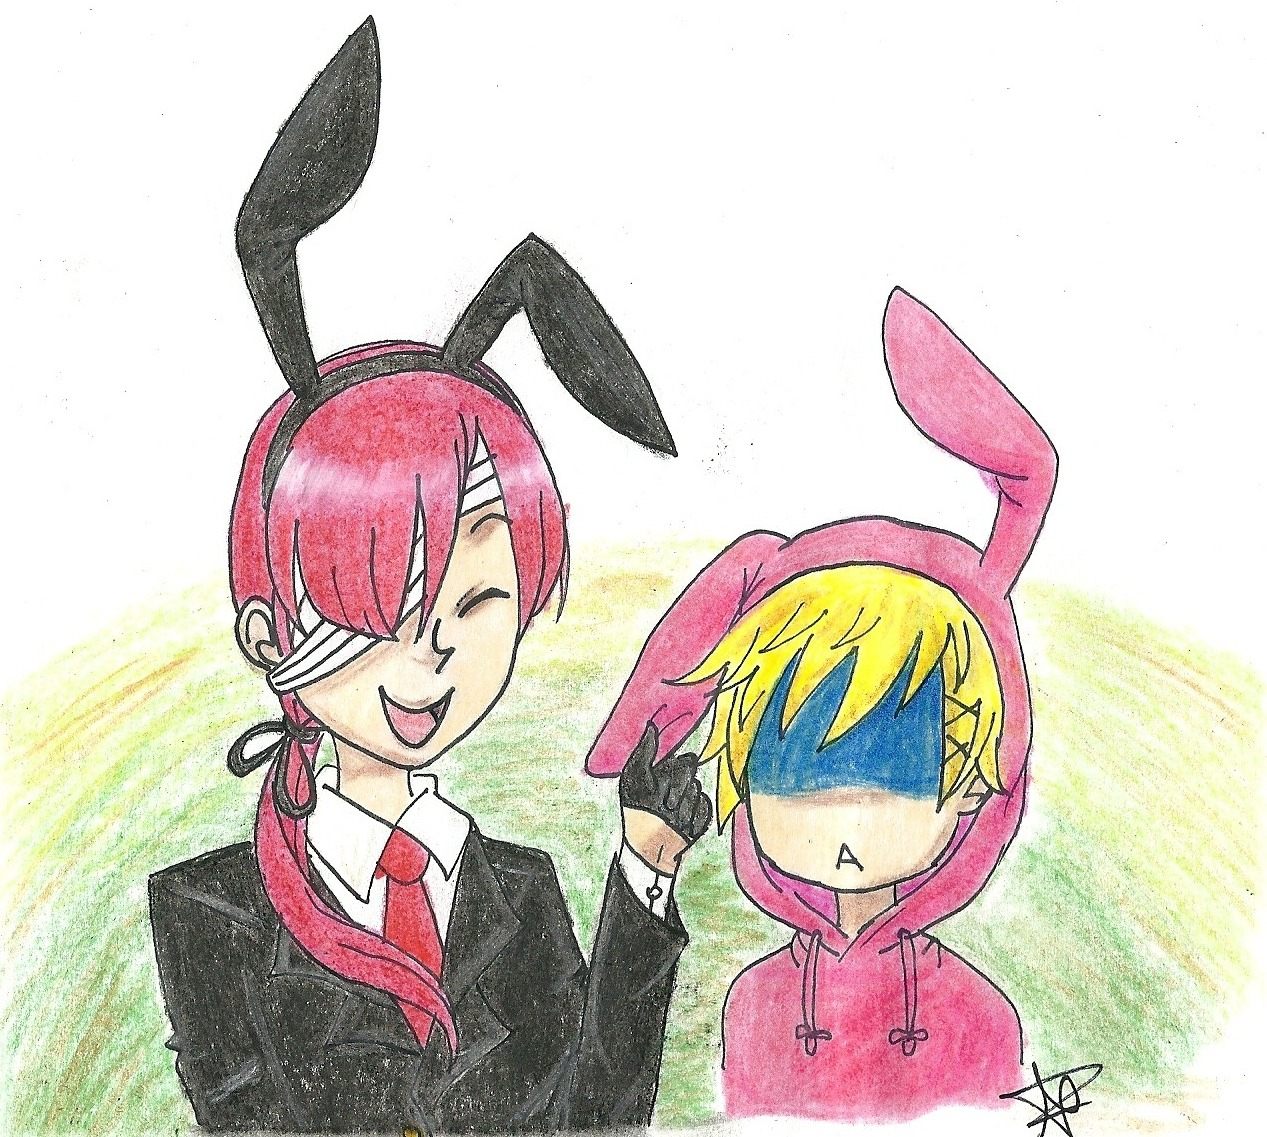 What? I made an actually good fanart? o.O Mhm, Happy Early Easter <3